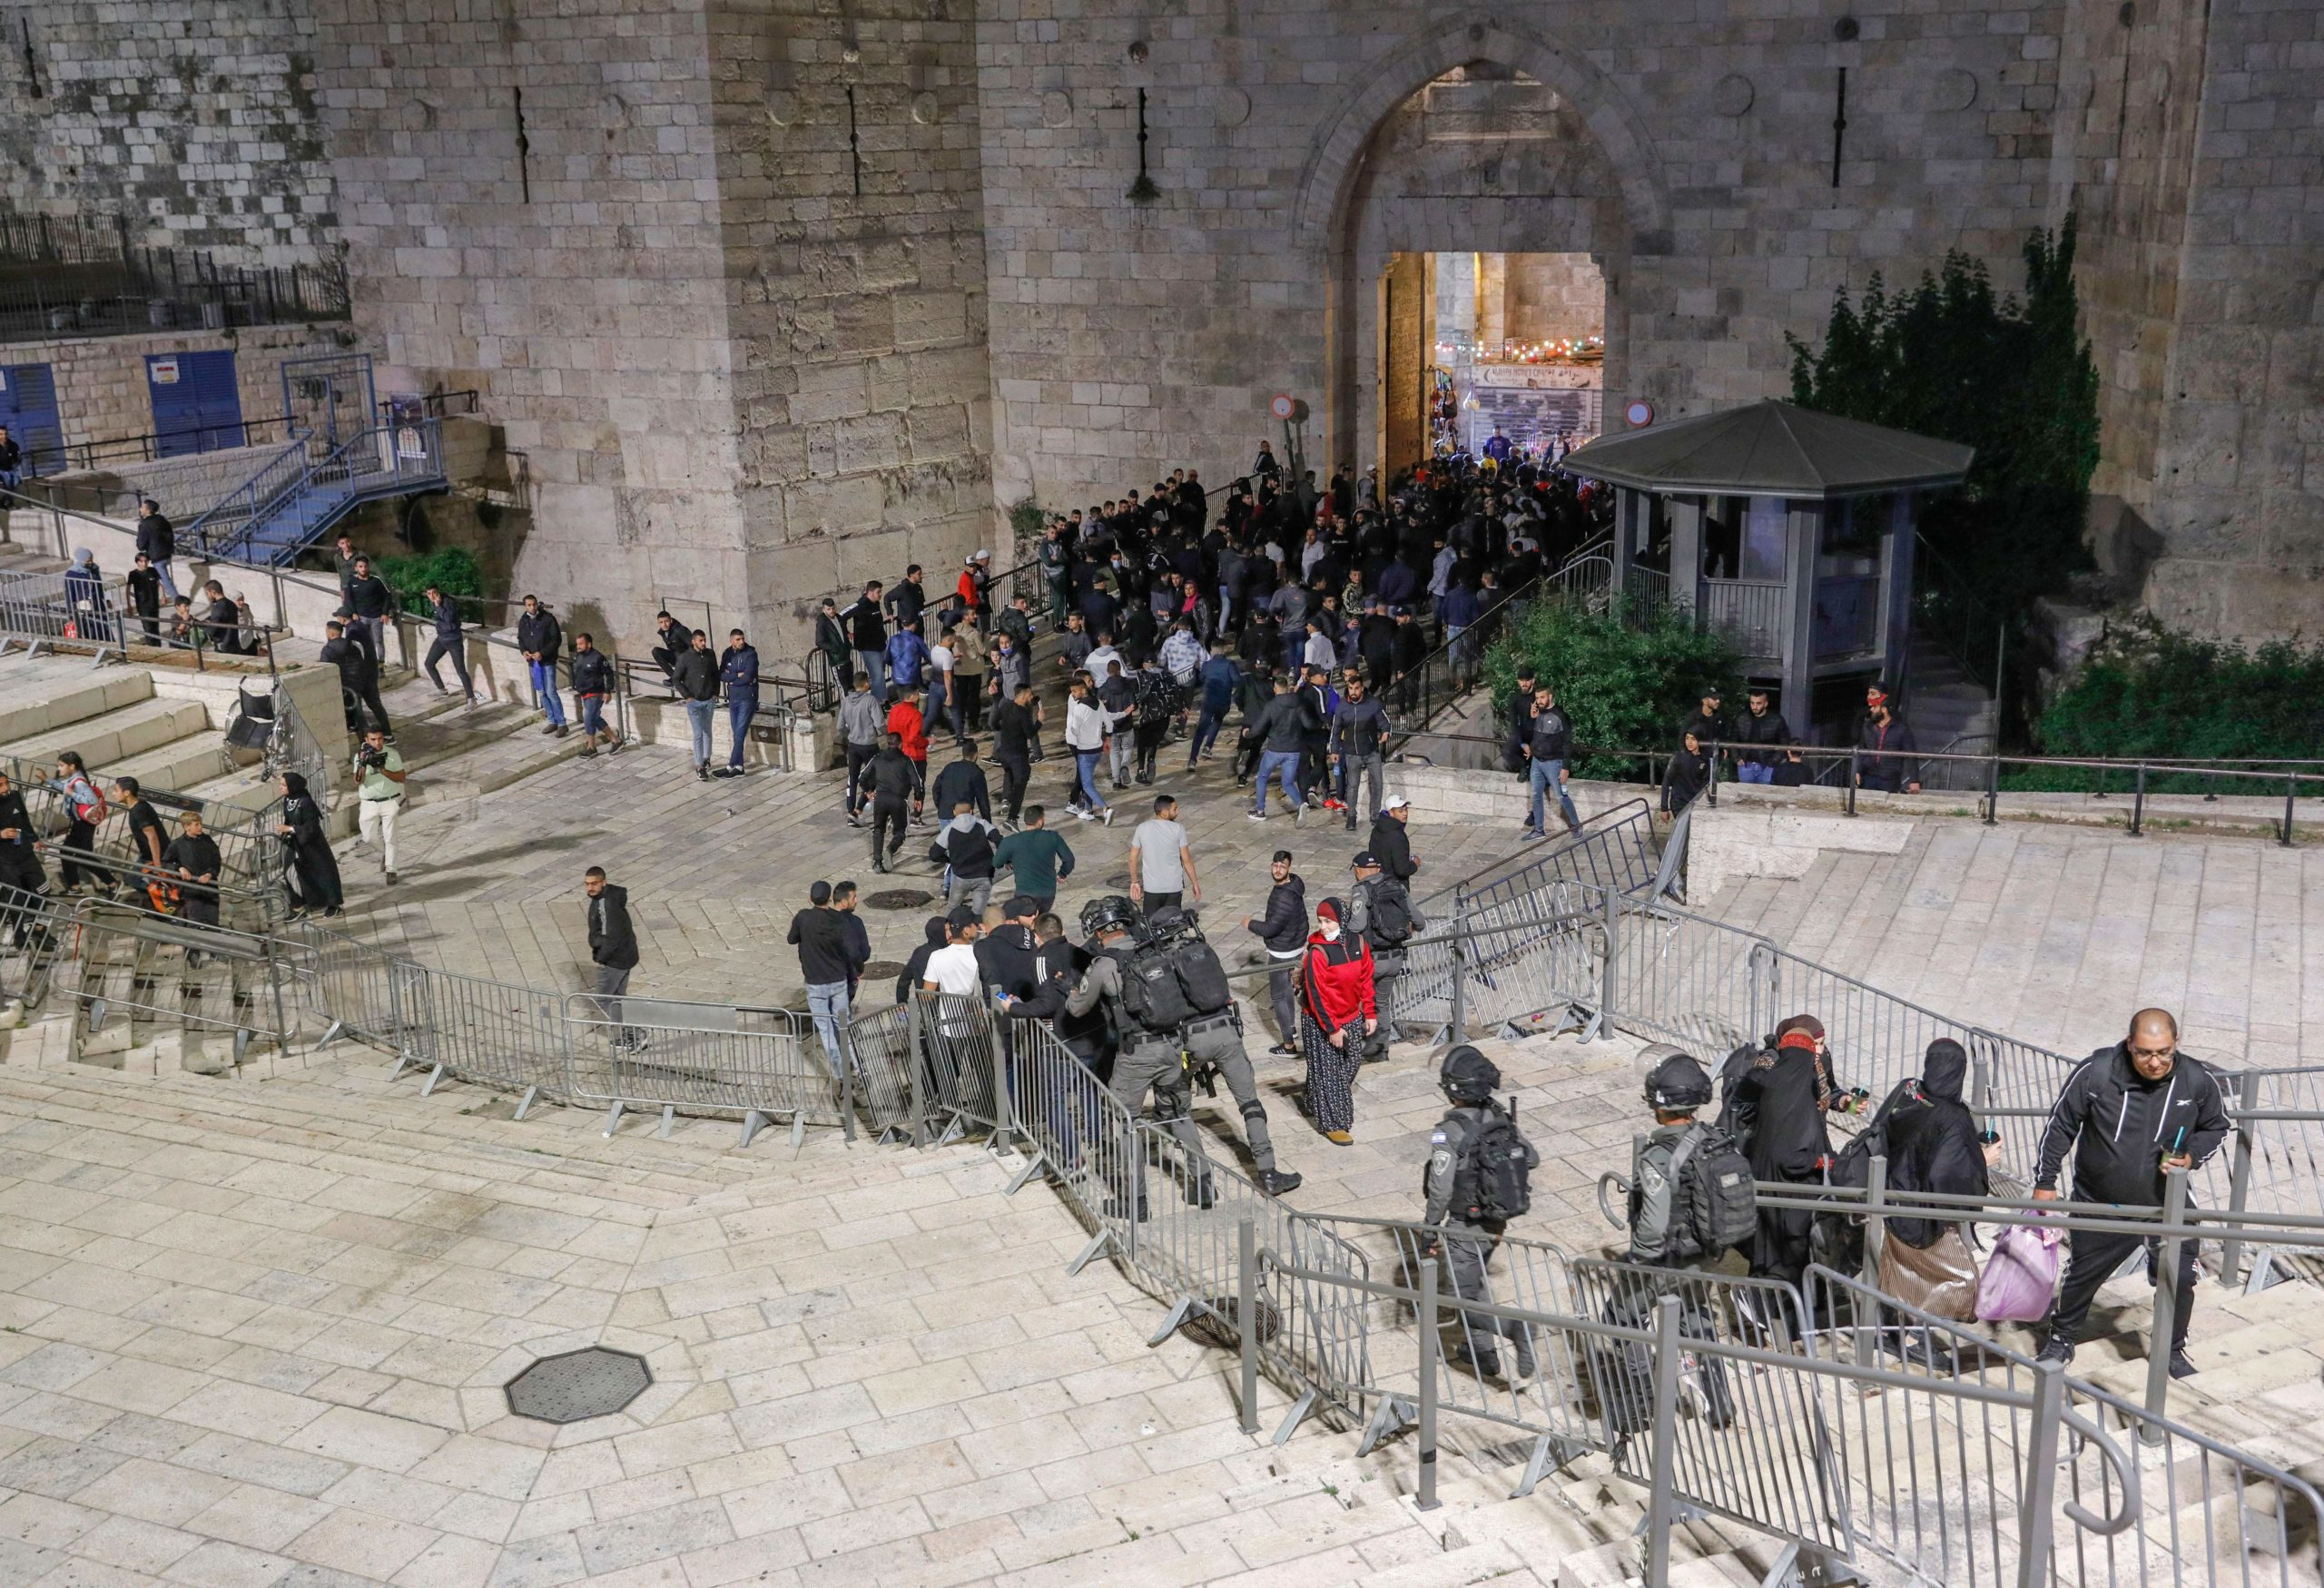 Members of Israeli security forces deploy amid clashes with Palestinian protesters in Jerusalem, on April 22, 2021. (Photo by AHMAD GHARABLI/AFP via Getty Images)